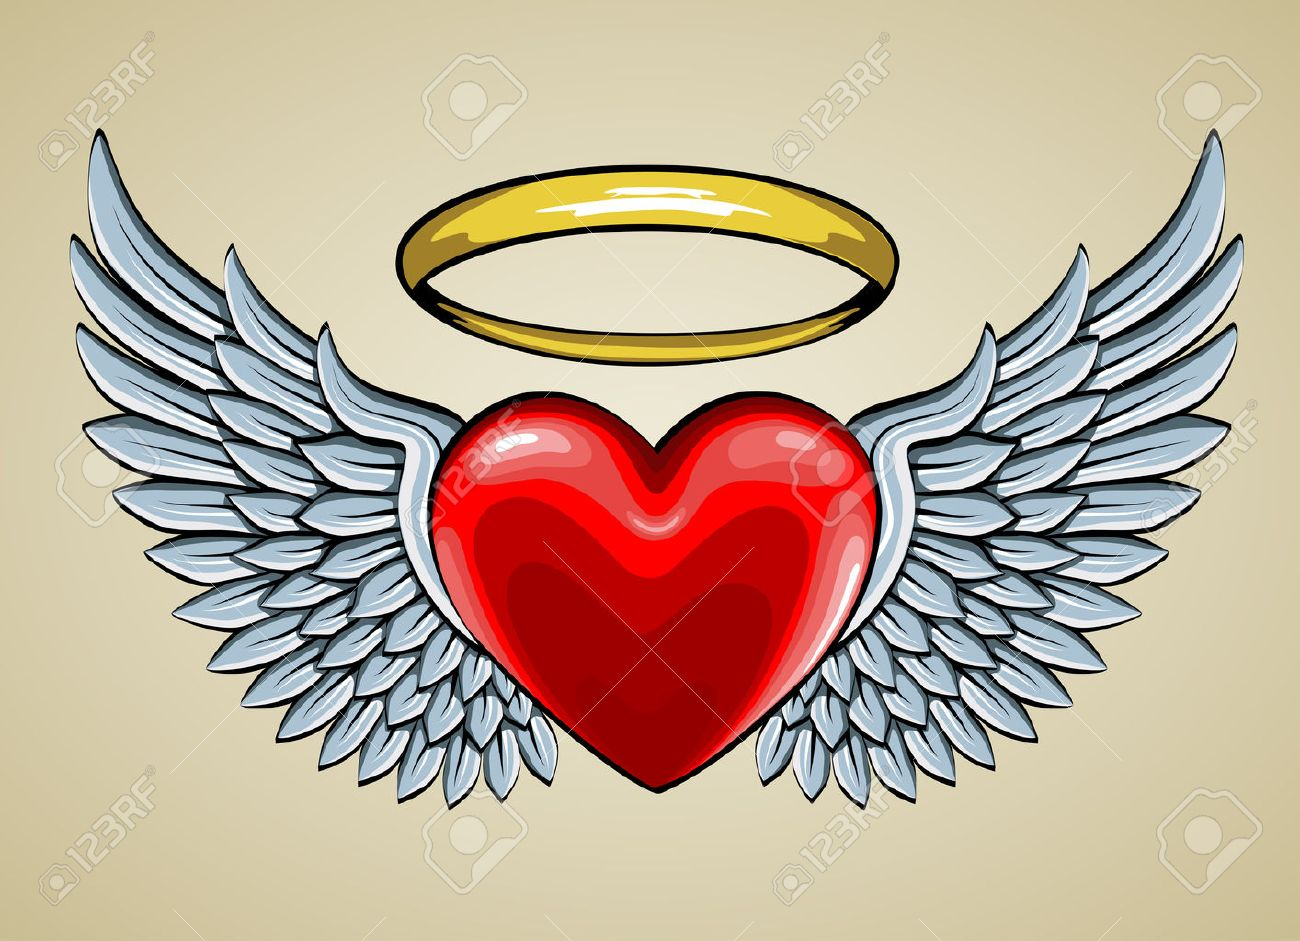 Red heart with angel wings and halo royalty free cliparts vectors red heart with angel wings and halo stock vector 44248536 biocorpaavc